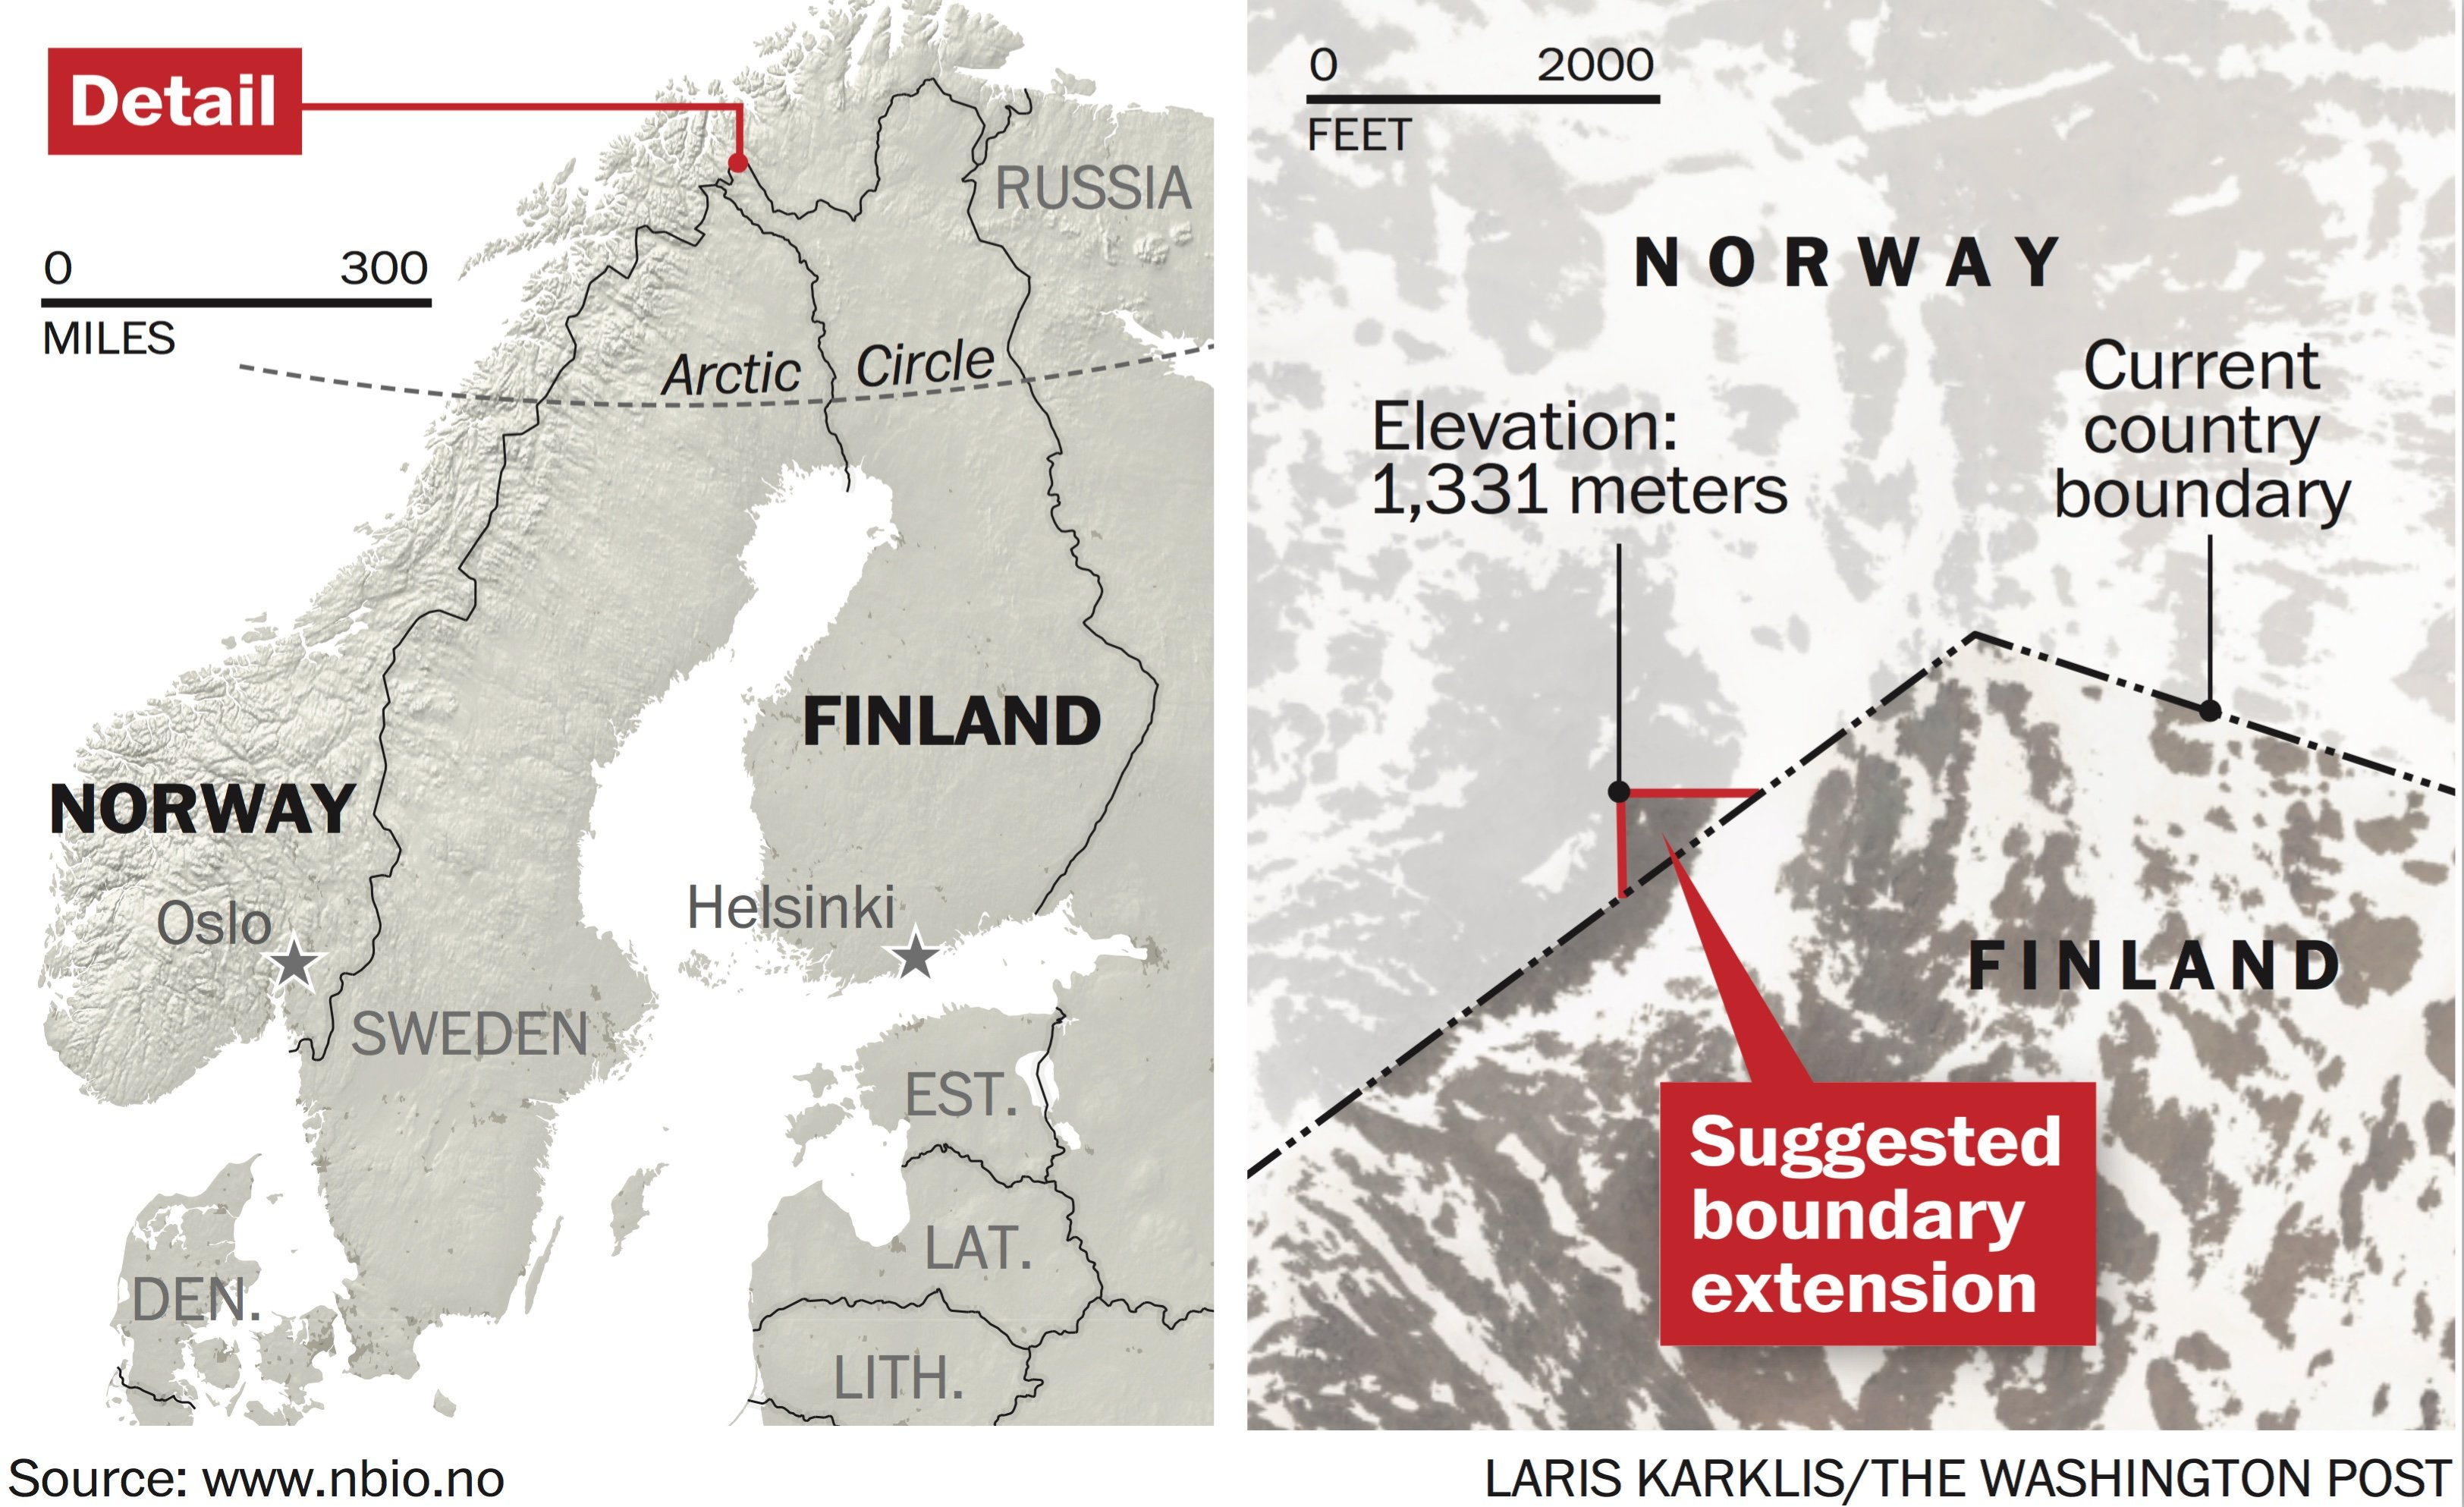 An online movement in Norway sought to give Finland the summit of a peak the straddles the Arctic border between the two nations. The gift would have given Finland a new highest point, but the plan was rejected by Norway. (Laris Karklis / The Washington Post)